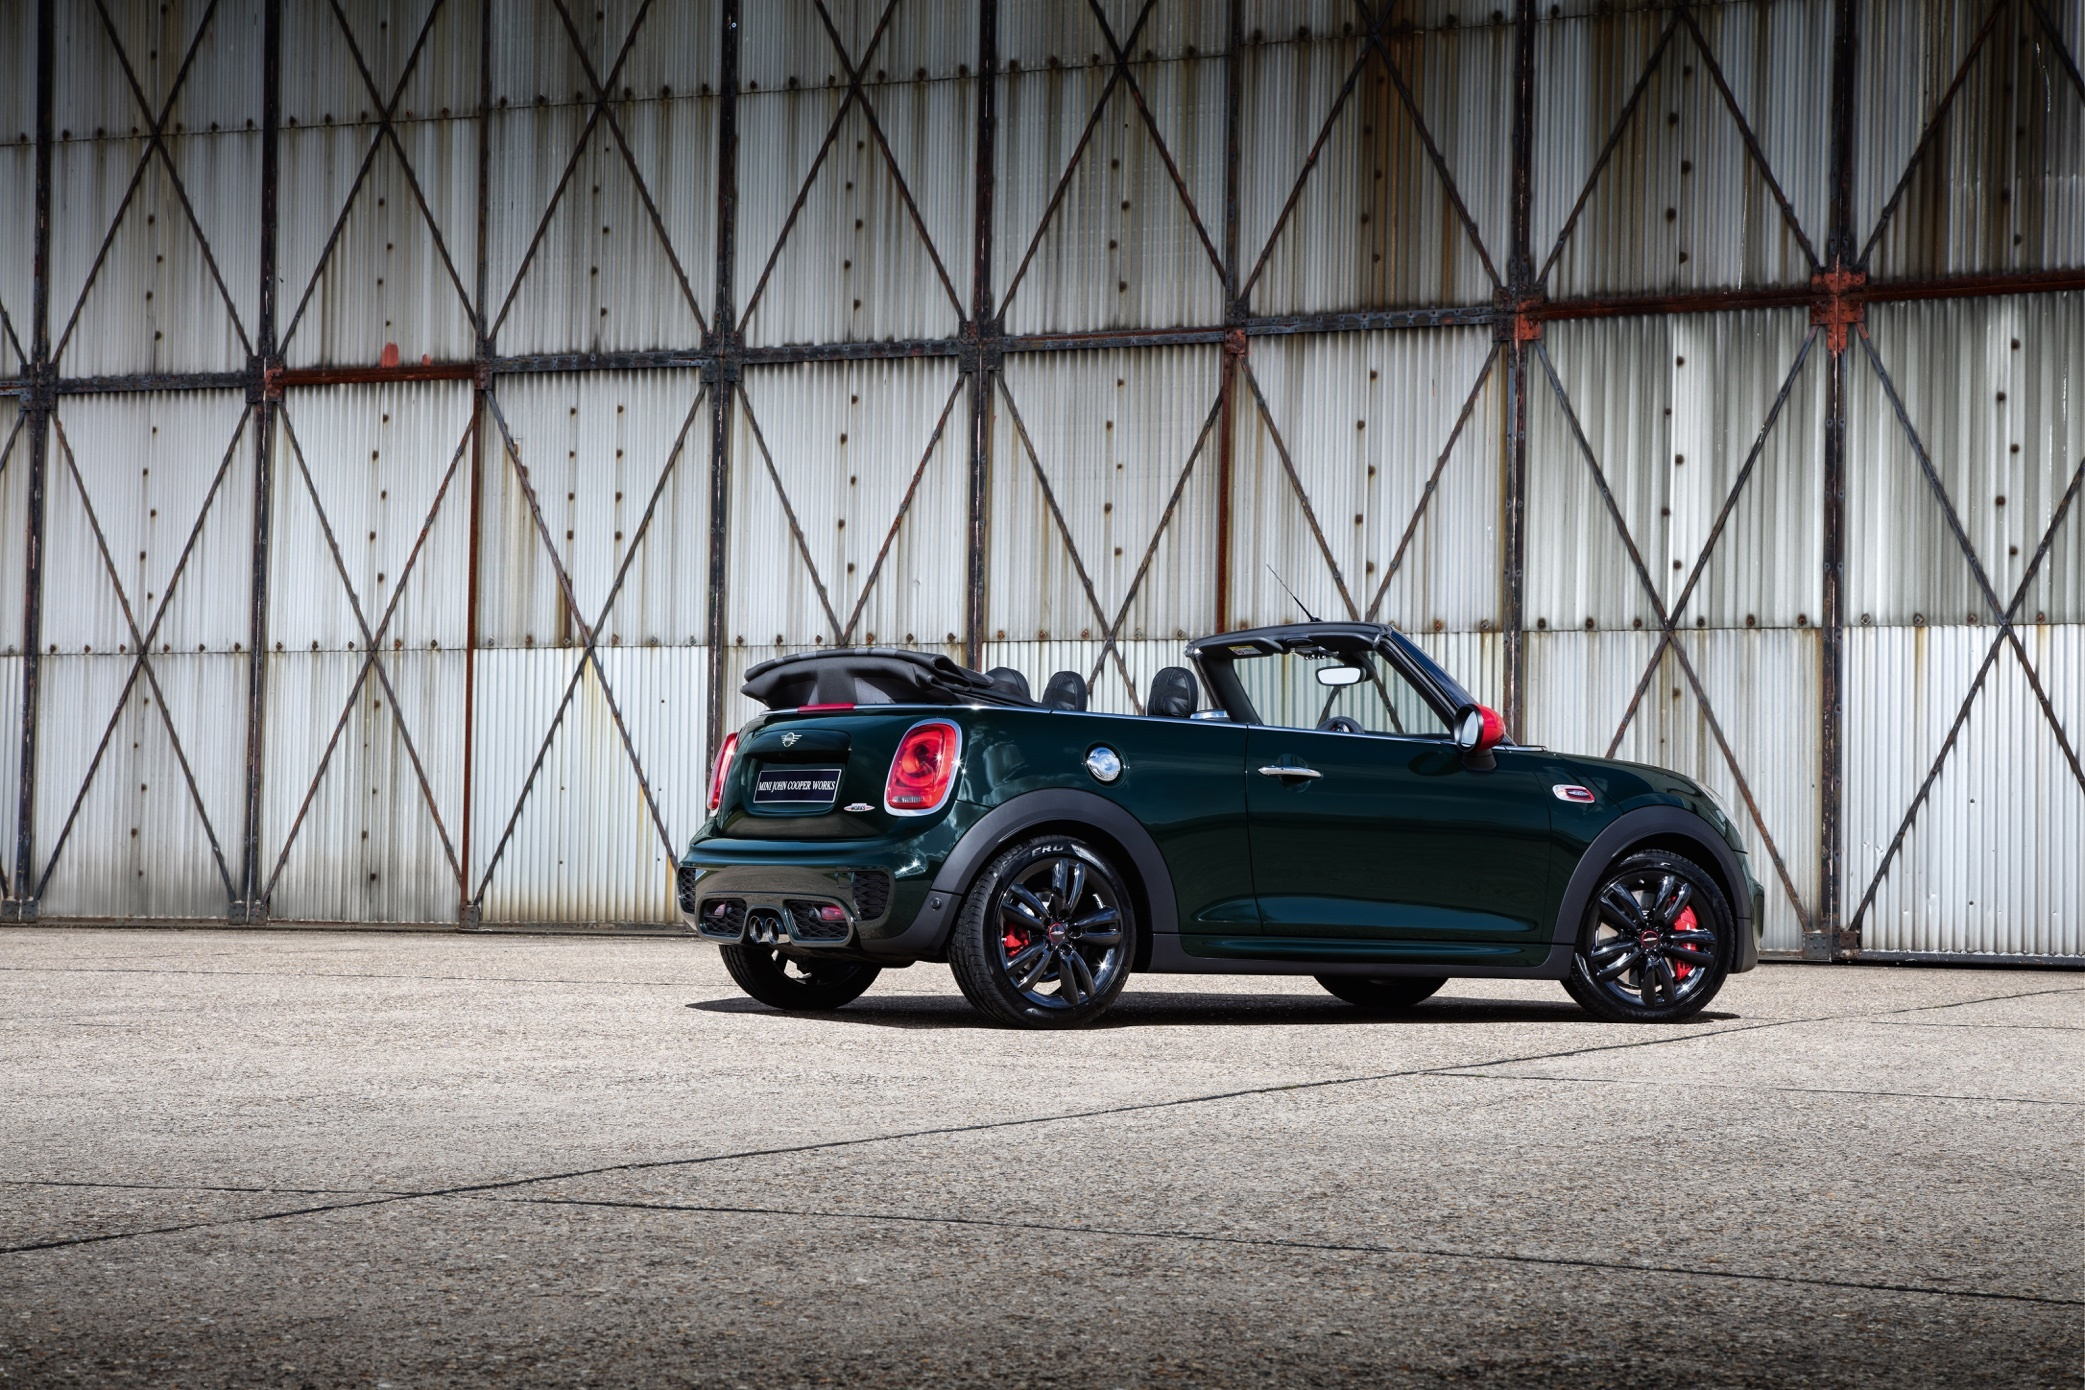 The latest MINI Convertible featuring the new 25th Anniversary edition